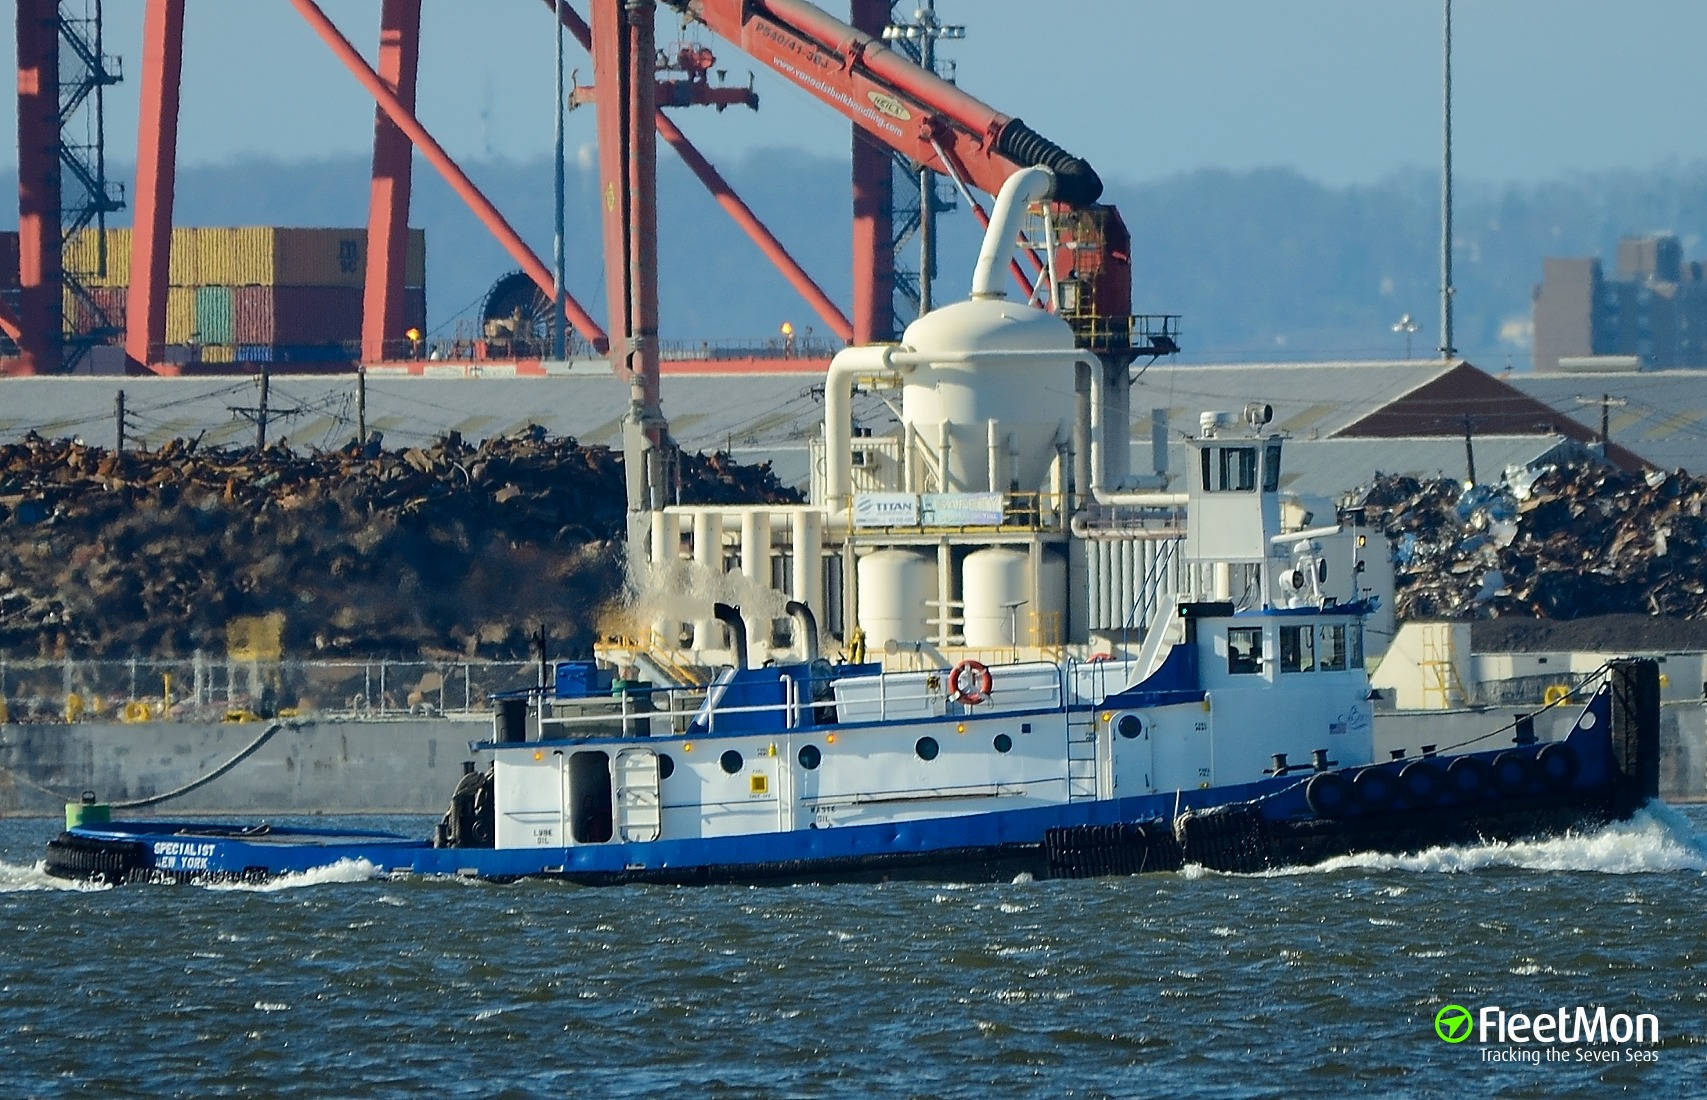 Tug SPECIALIST sank after collision, 1 dead 2 missing, USA